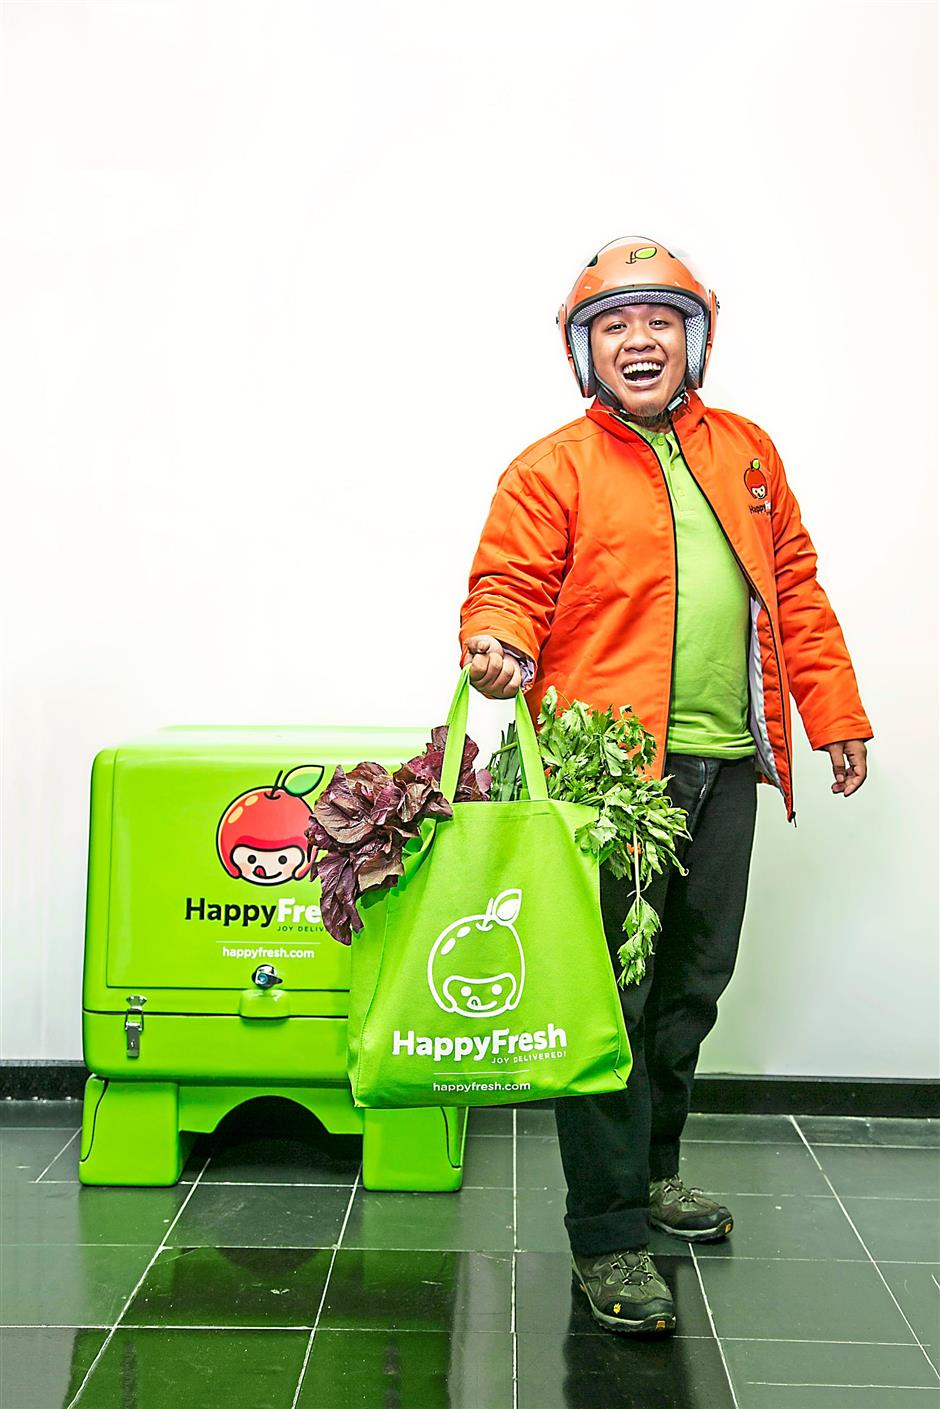 Need to get your grocery? Let the HappyFresh people do the shopping for you.